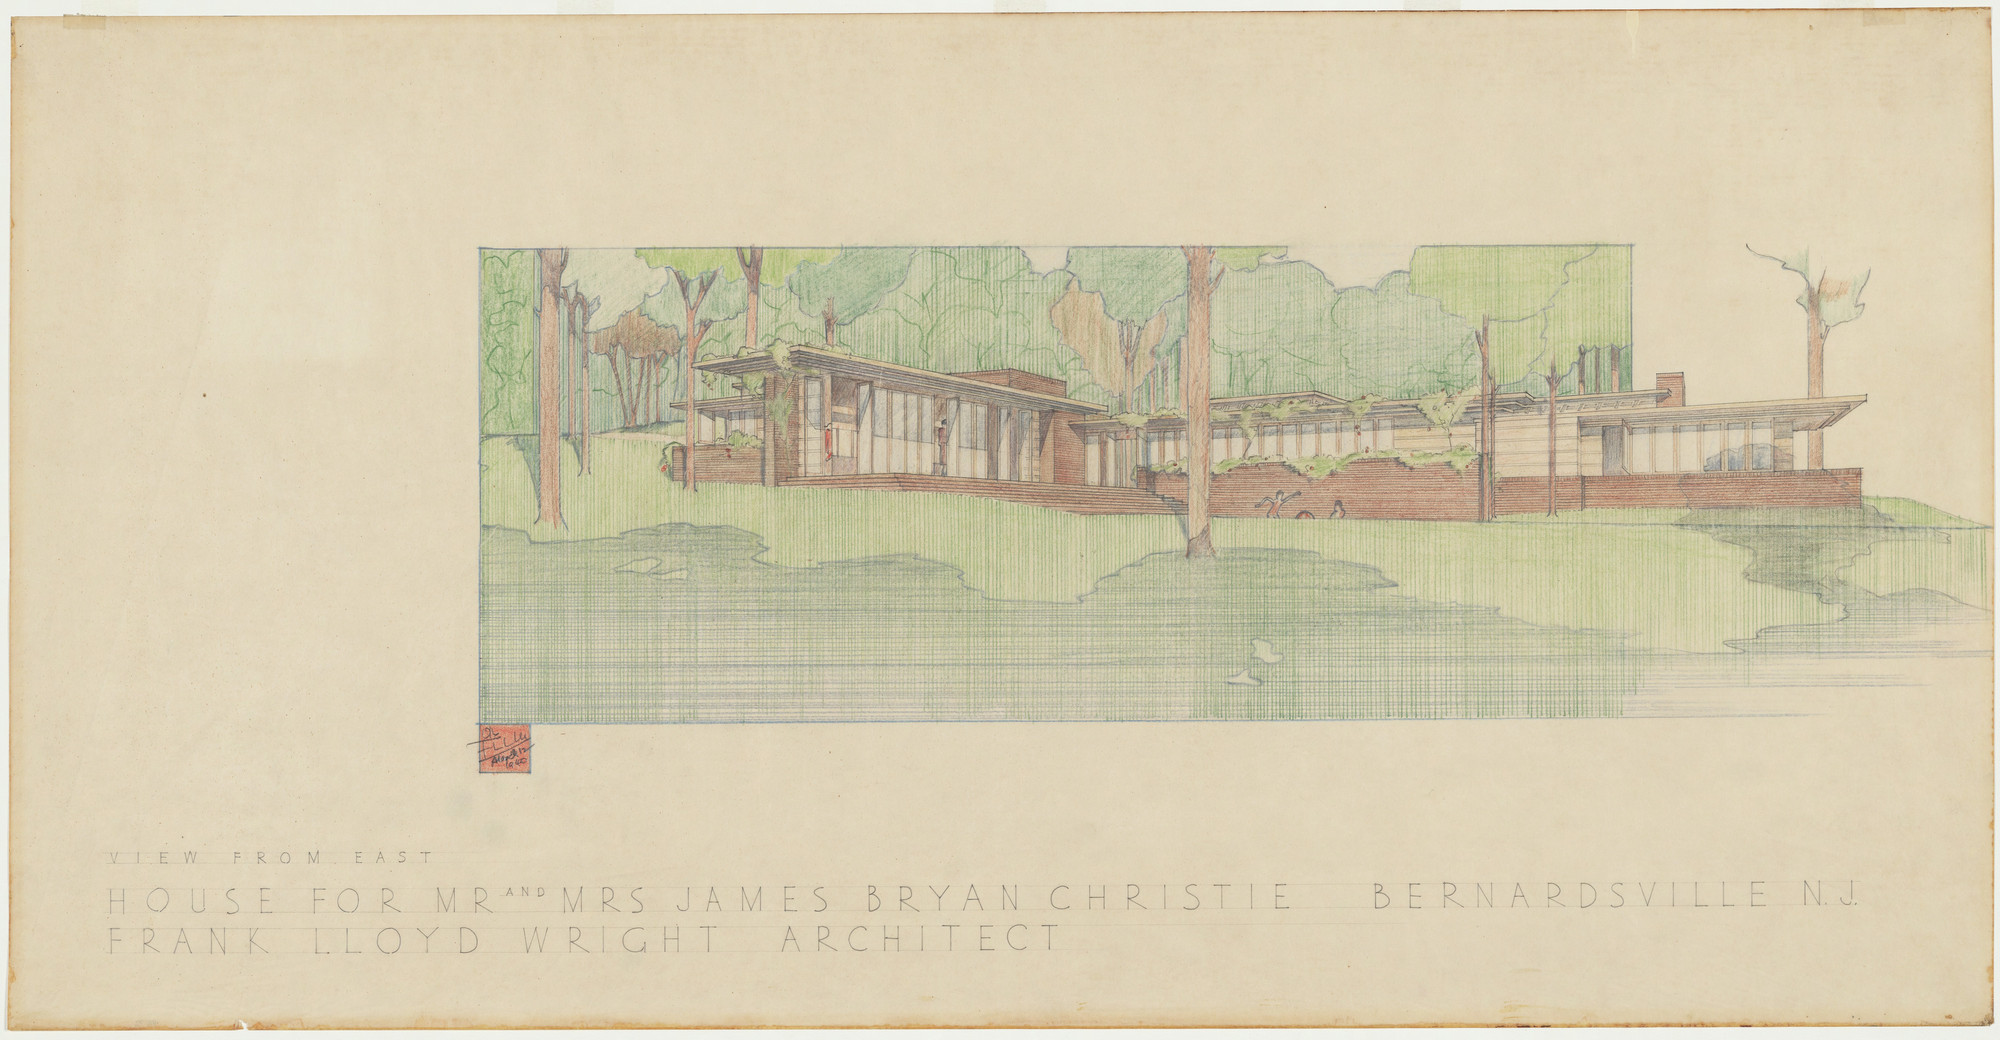 Frank Lloyd Wright. Mr. and Mrs. James Bryan Christie House, Bernardsville, New Jersey, Exterior perspective from east. 1940